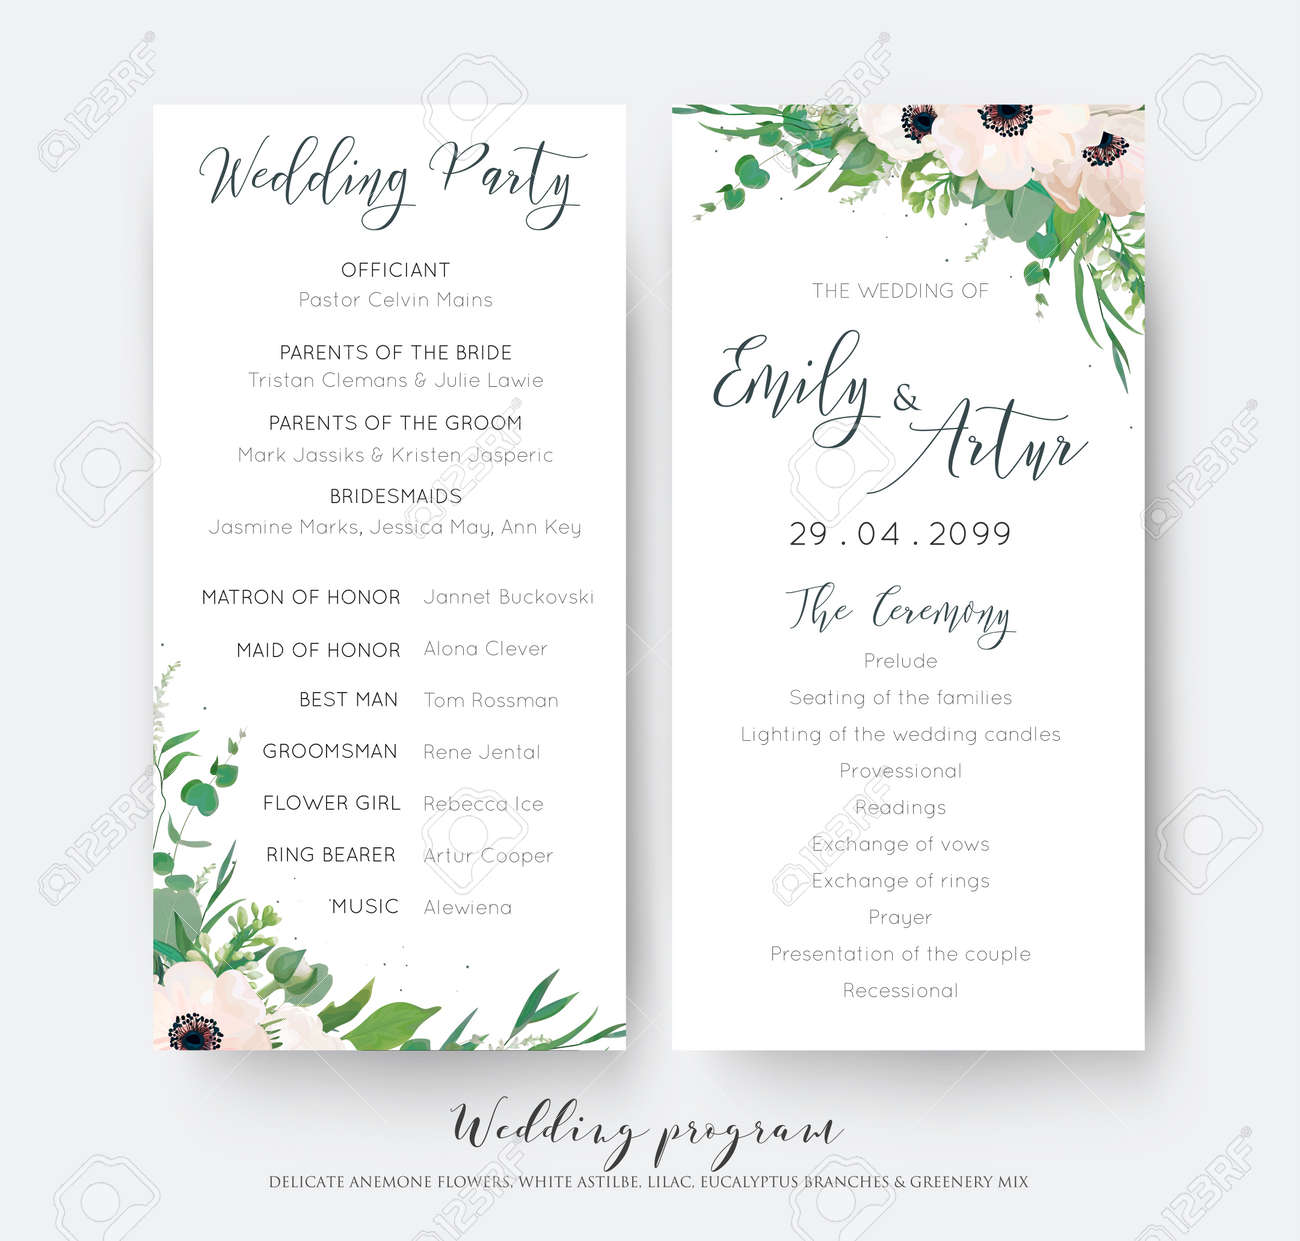 Wedding Ceremony And Party Program Card Elegant Design With Watercolor